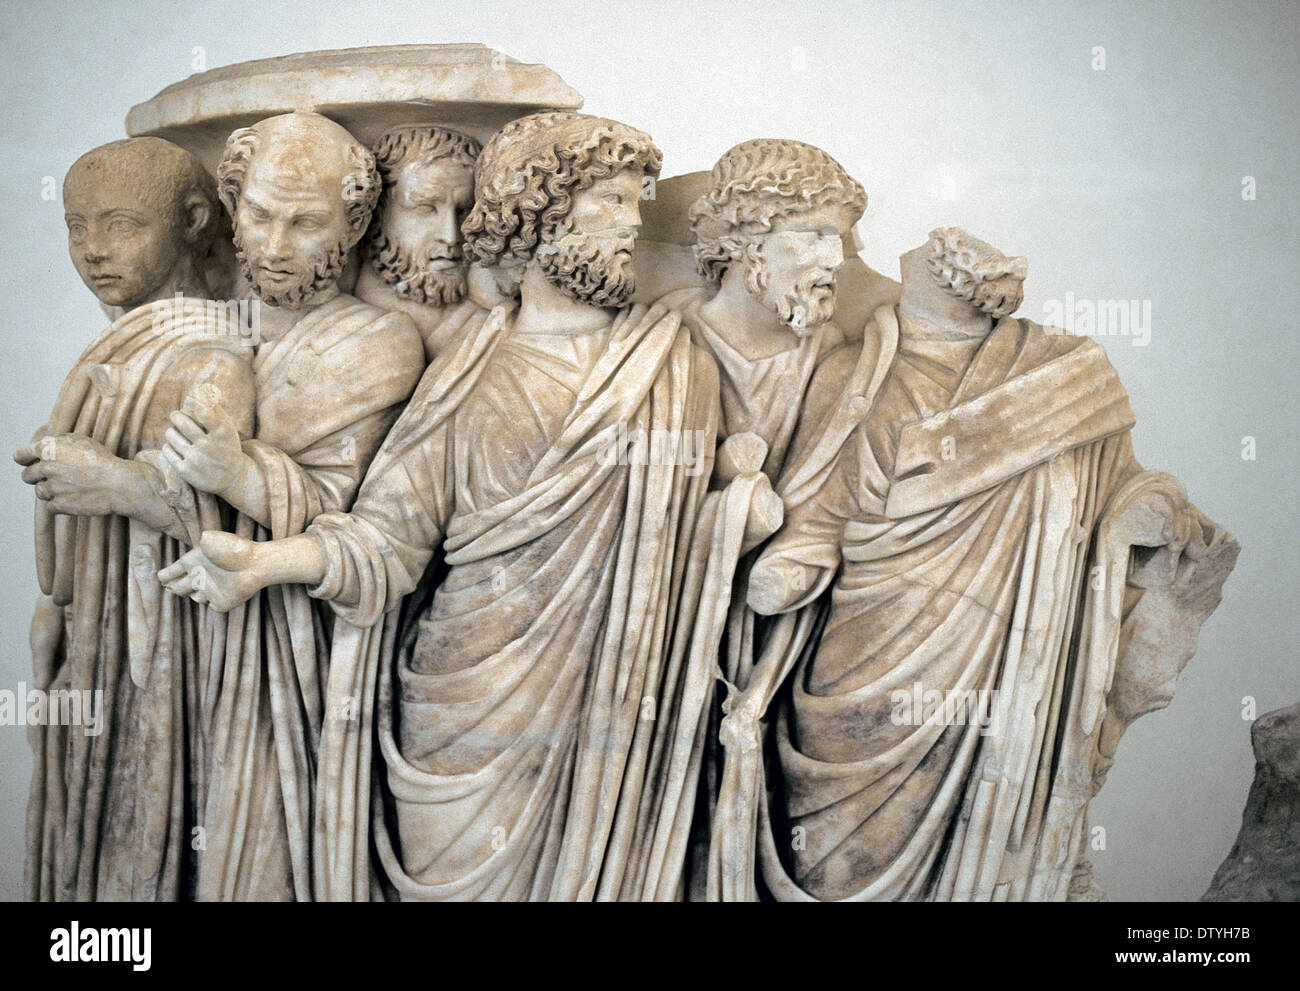 Roman Art. A lenos sarcophagus with processus consularis. Detail. Greek marble.  270 BC. Palazzo Massimo Alle Terme. Stock Photo